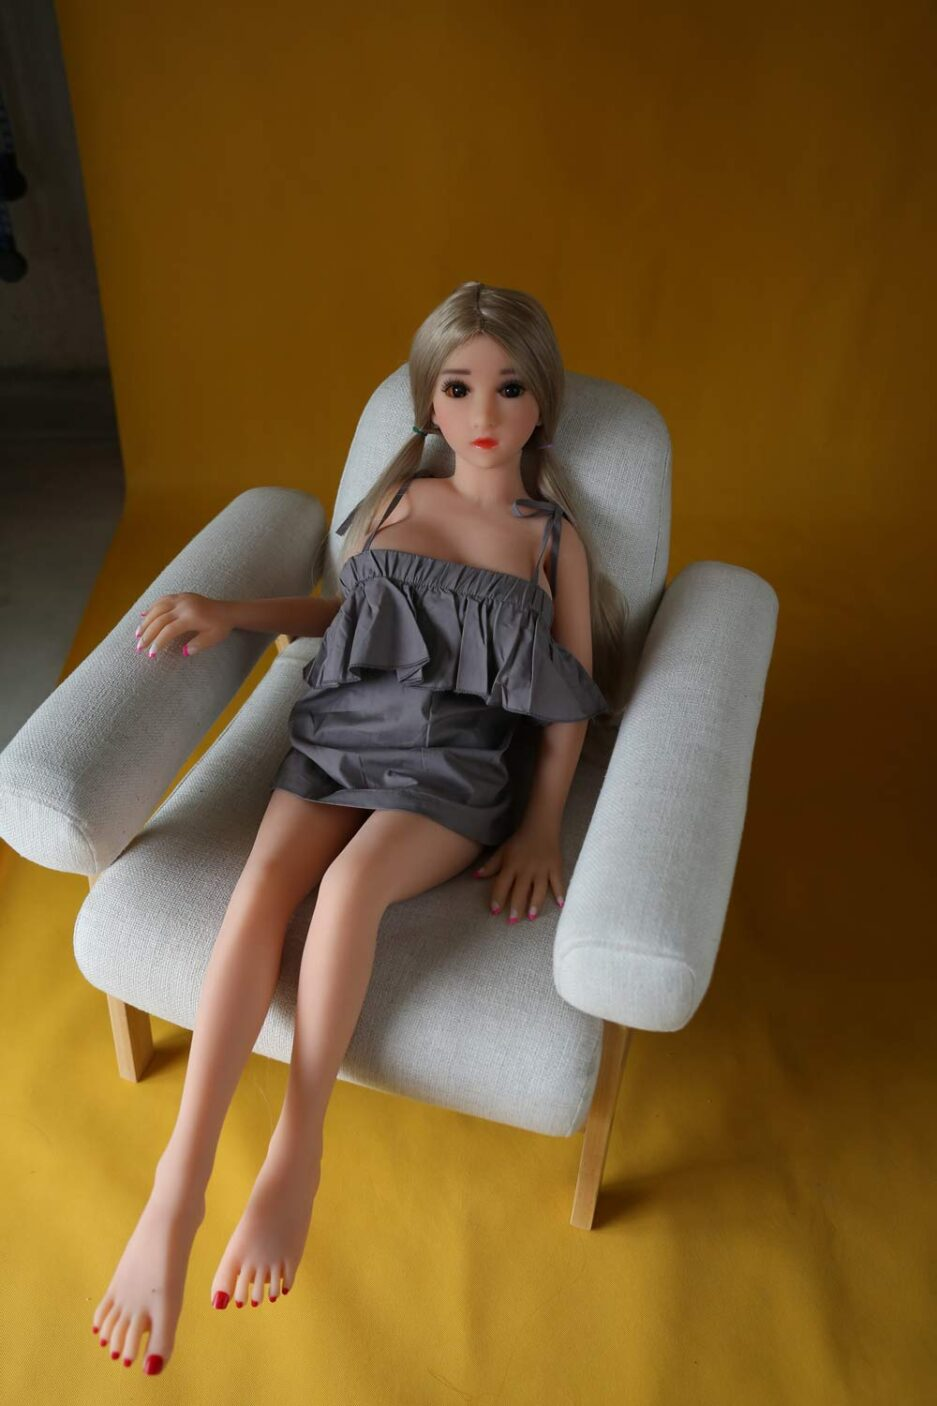 Mini sex doll with hand on chair